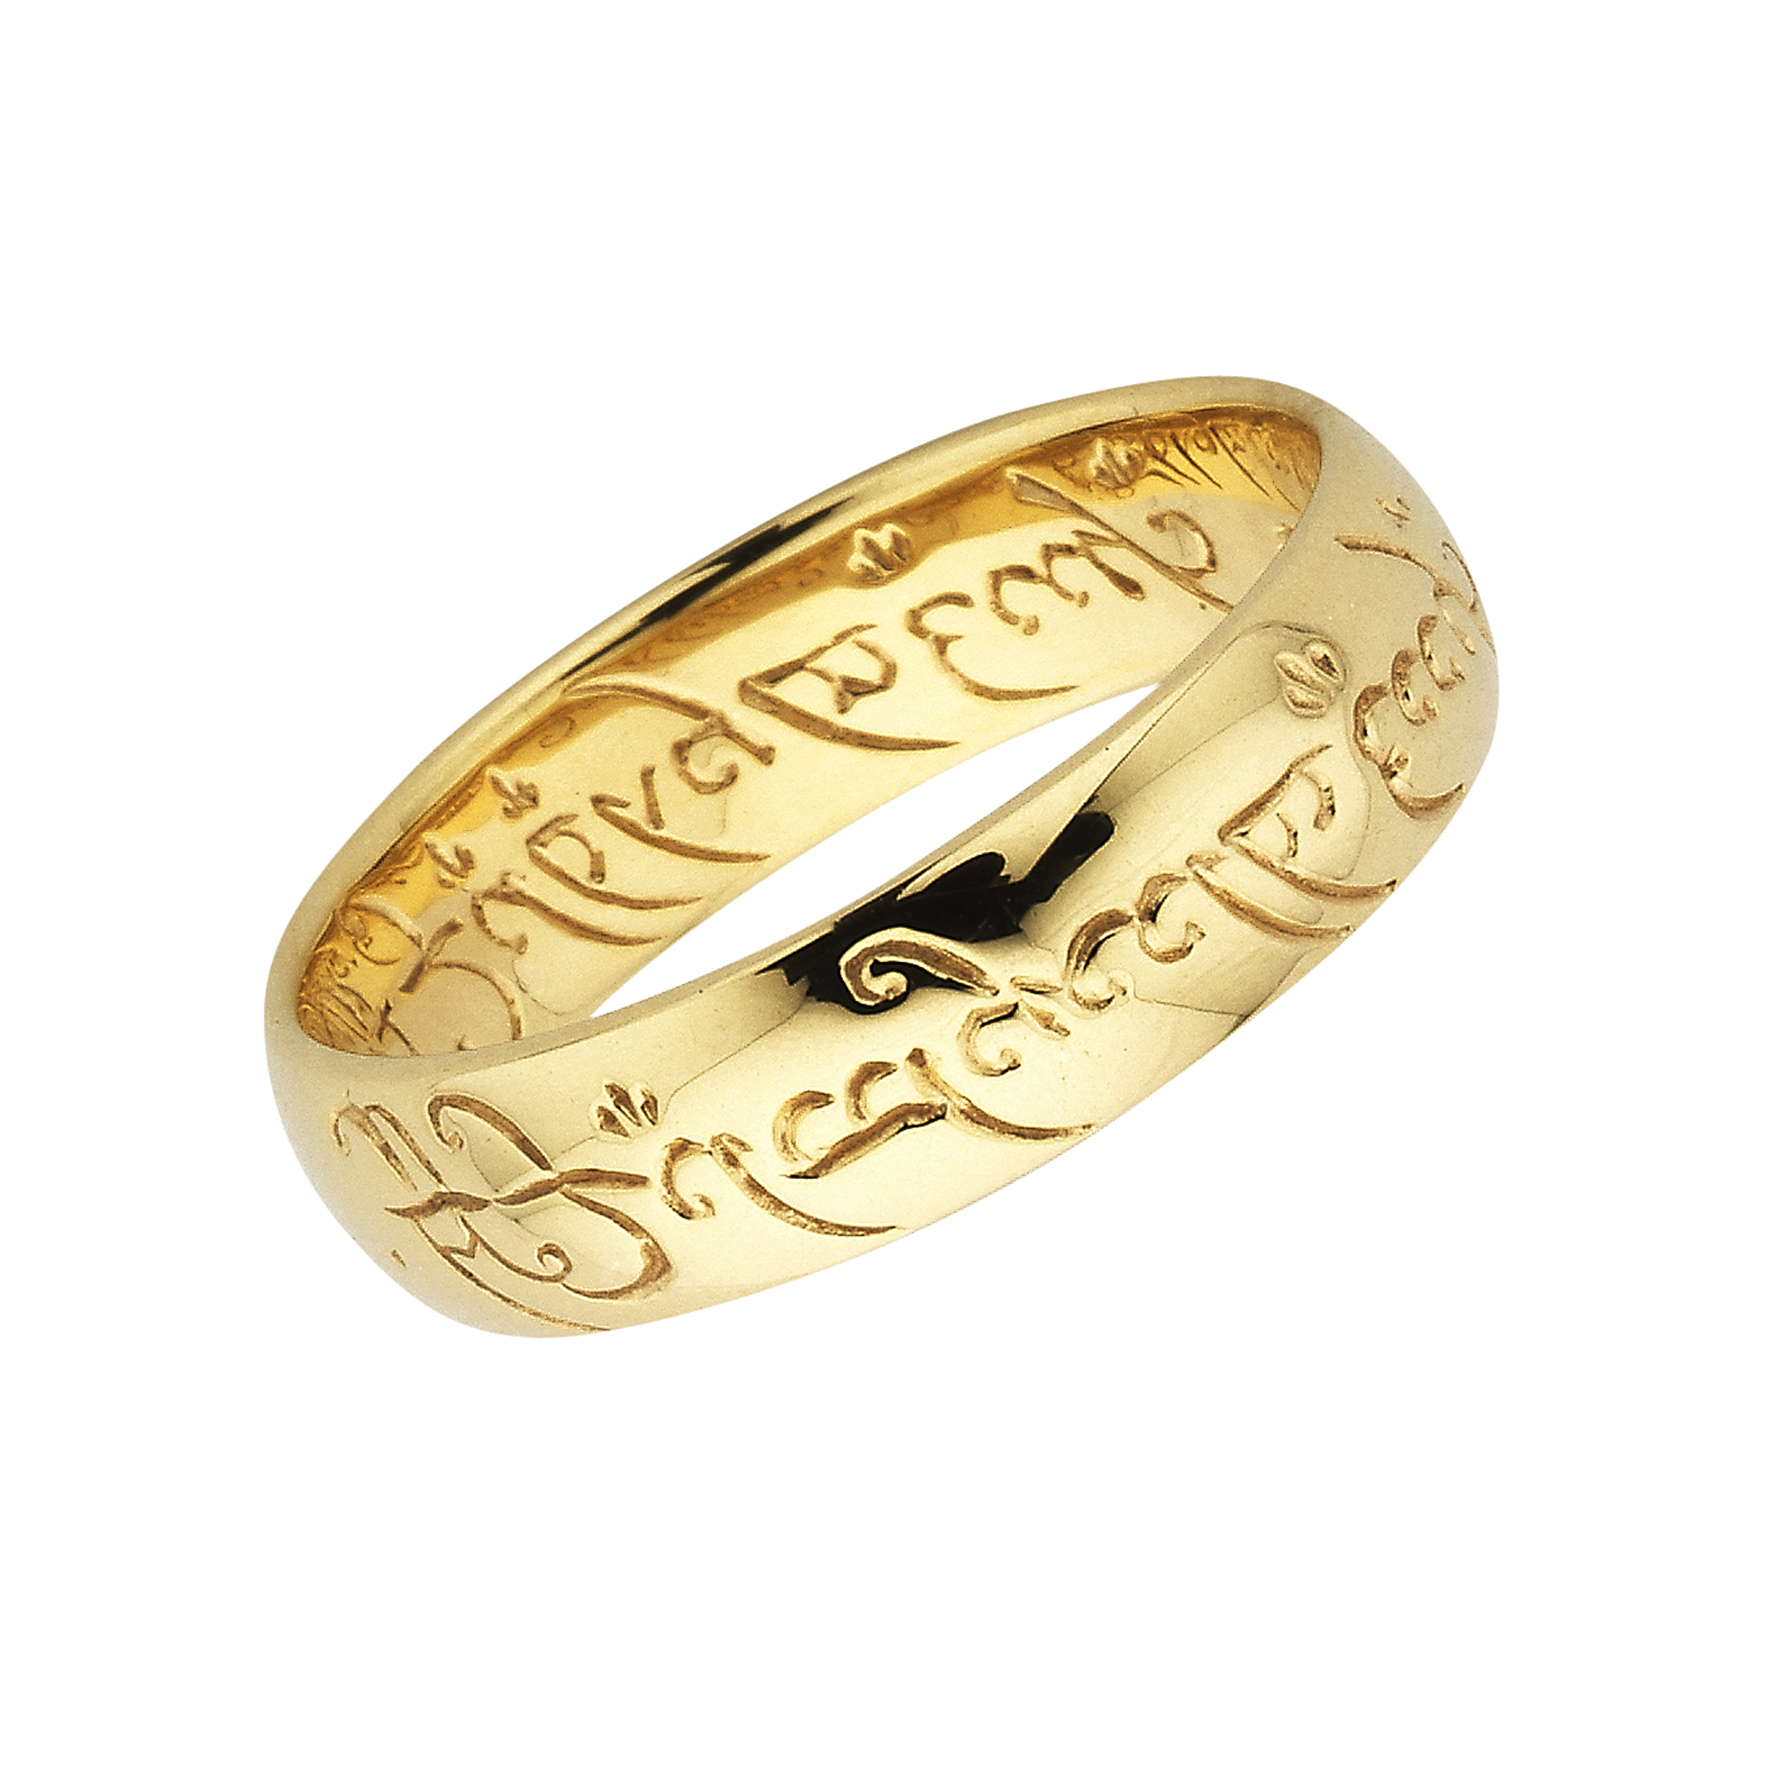 Lord of the Rings ficial Licensed Jewellery